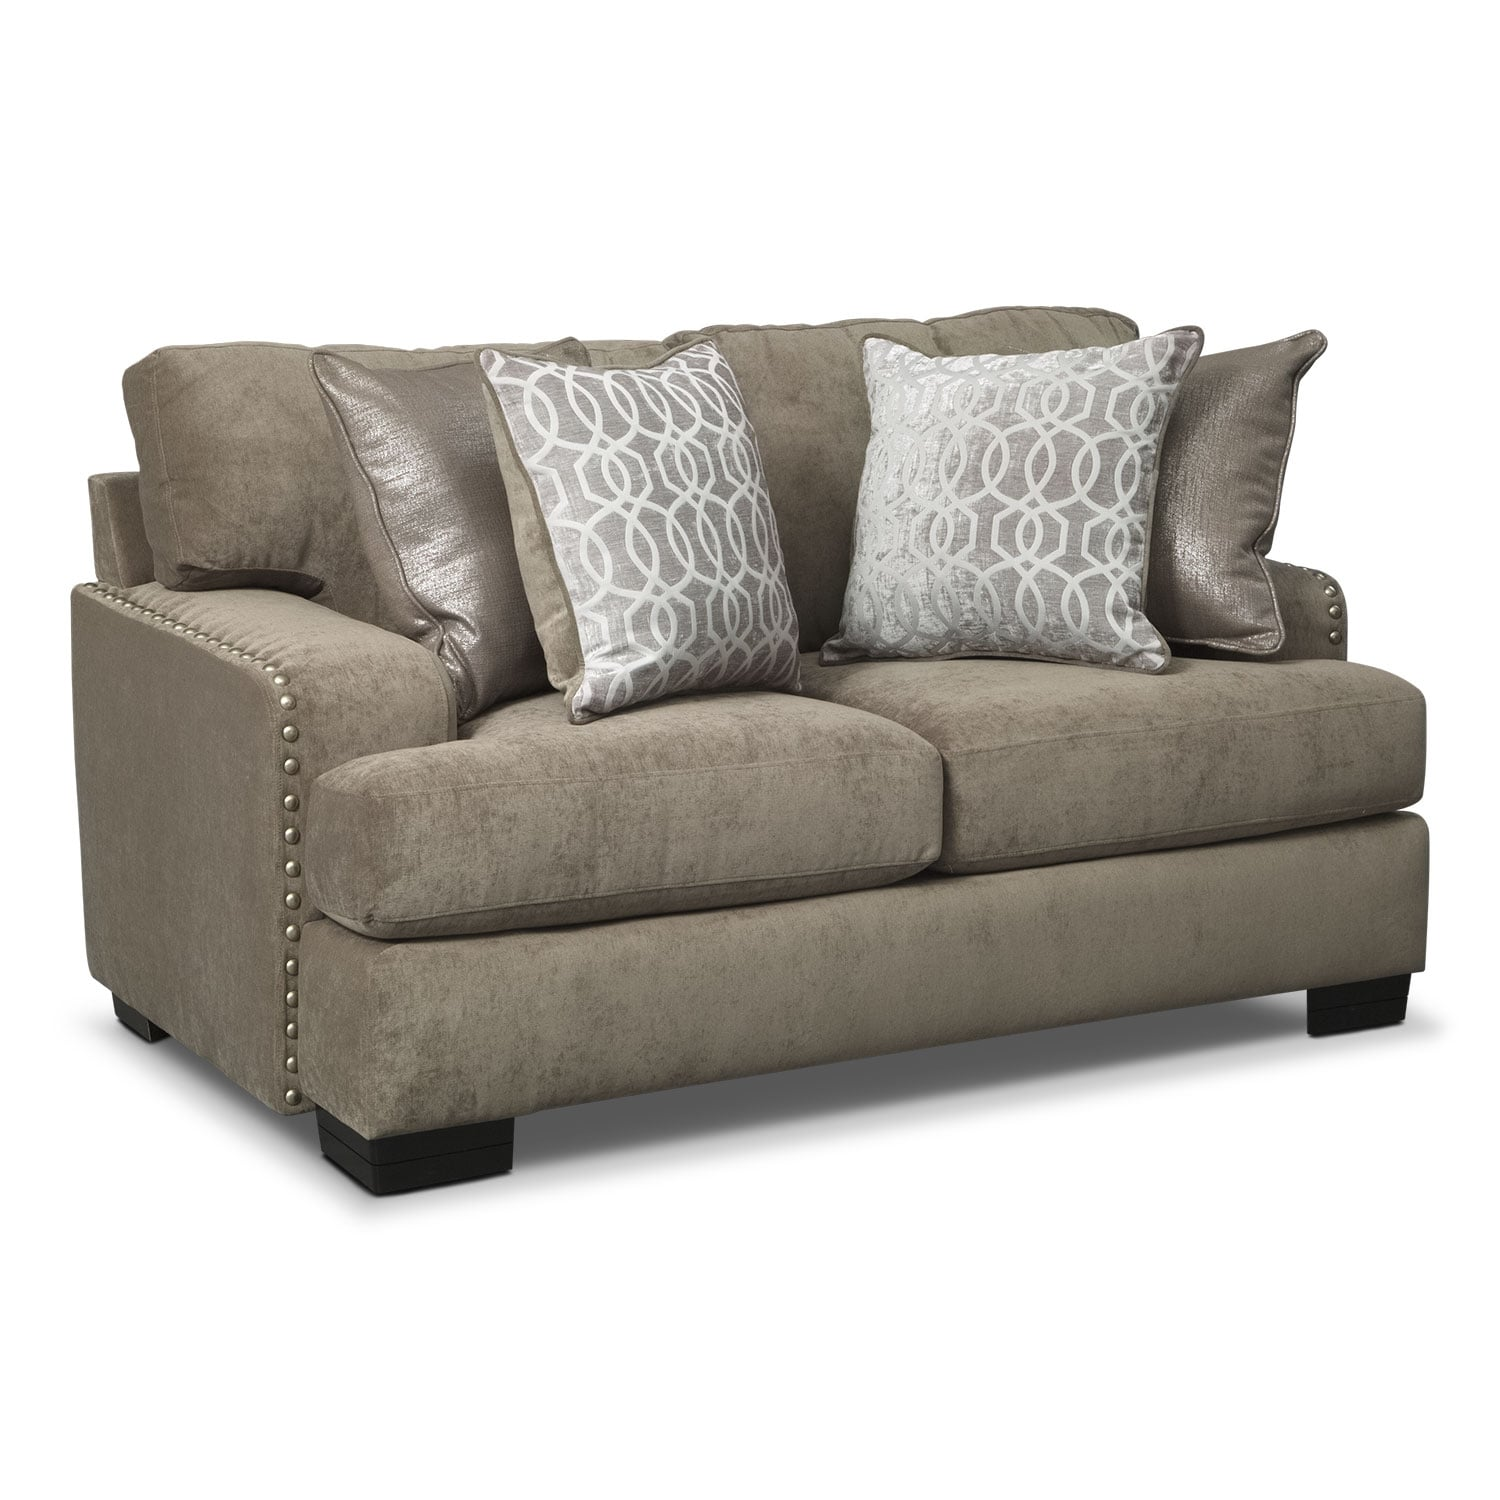 [Tempo Loveseat]